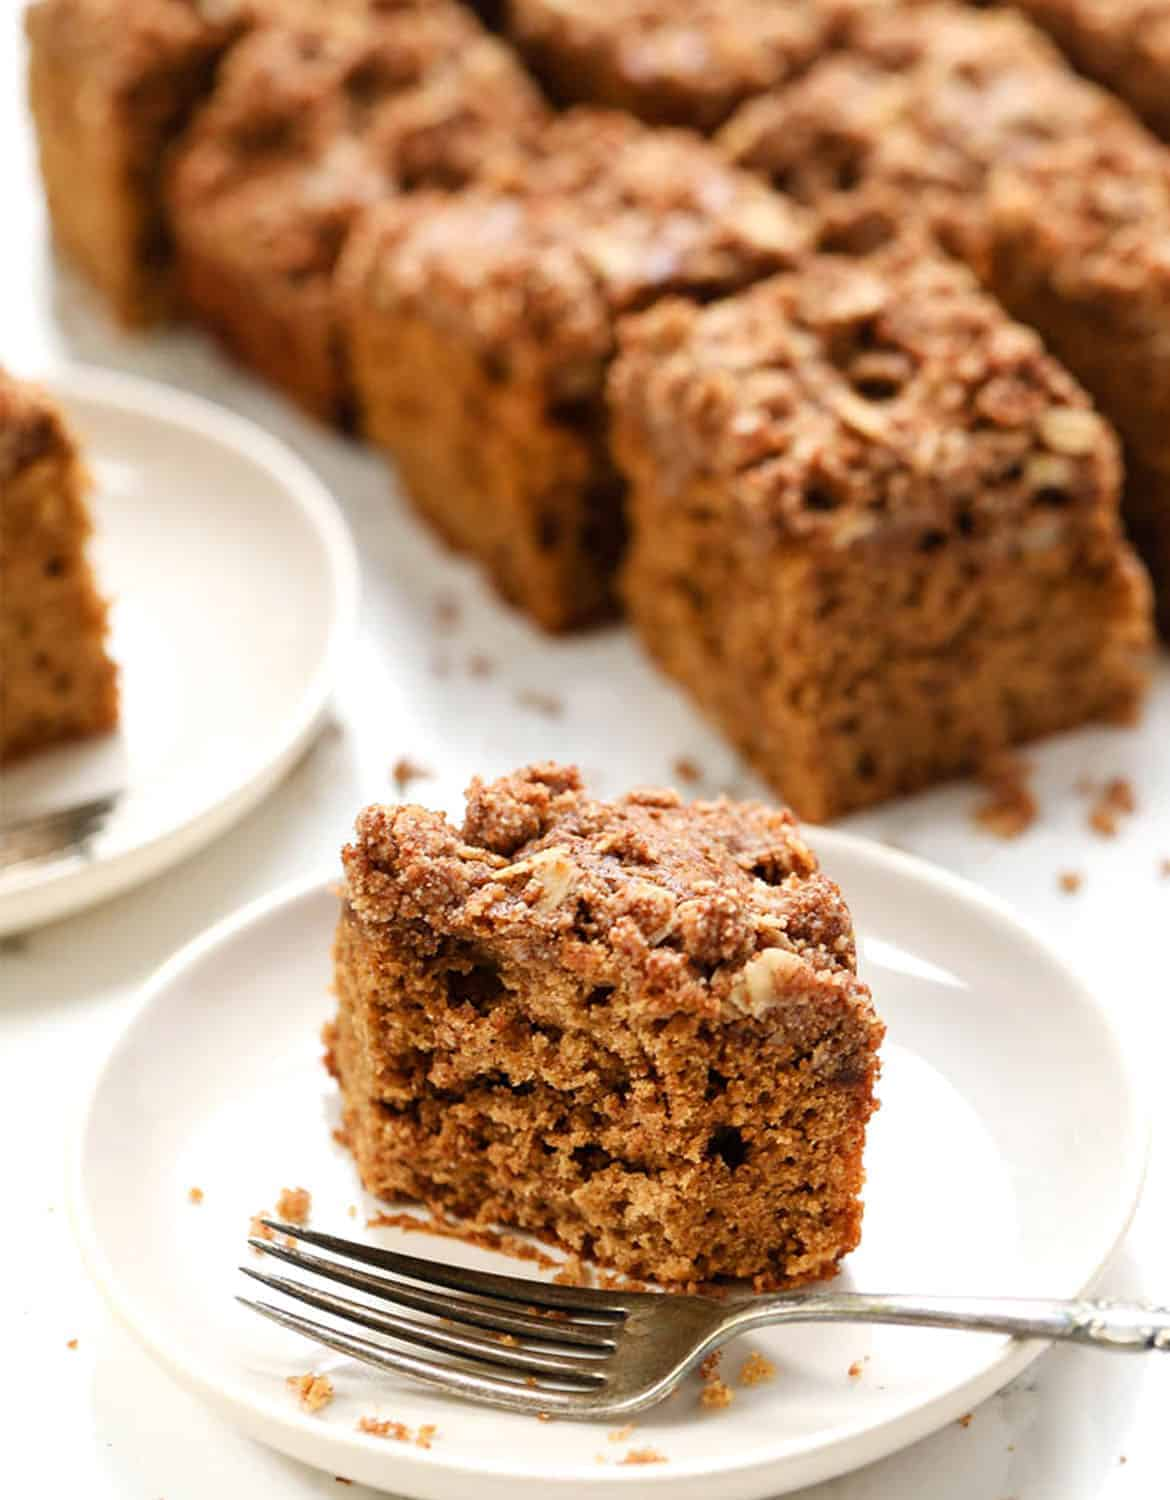 A portion of coffee cake on a white plate with a fork - Simply Quinoa